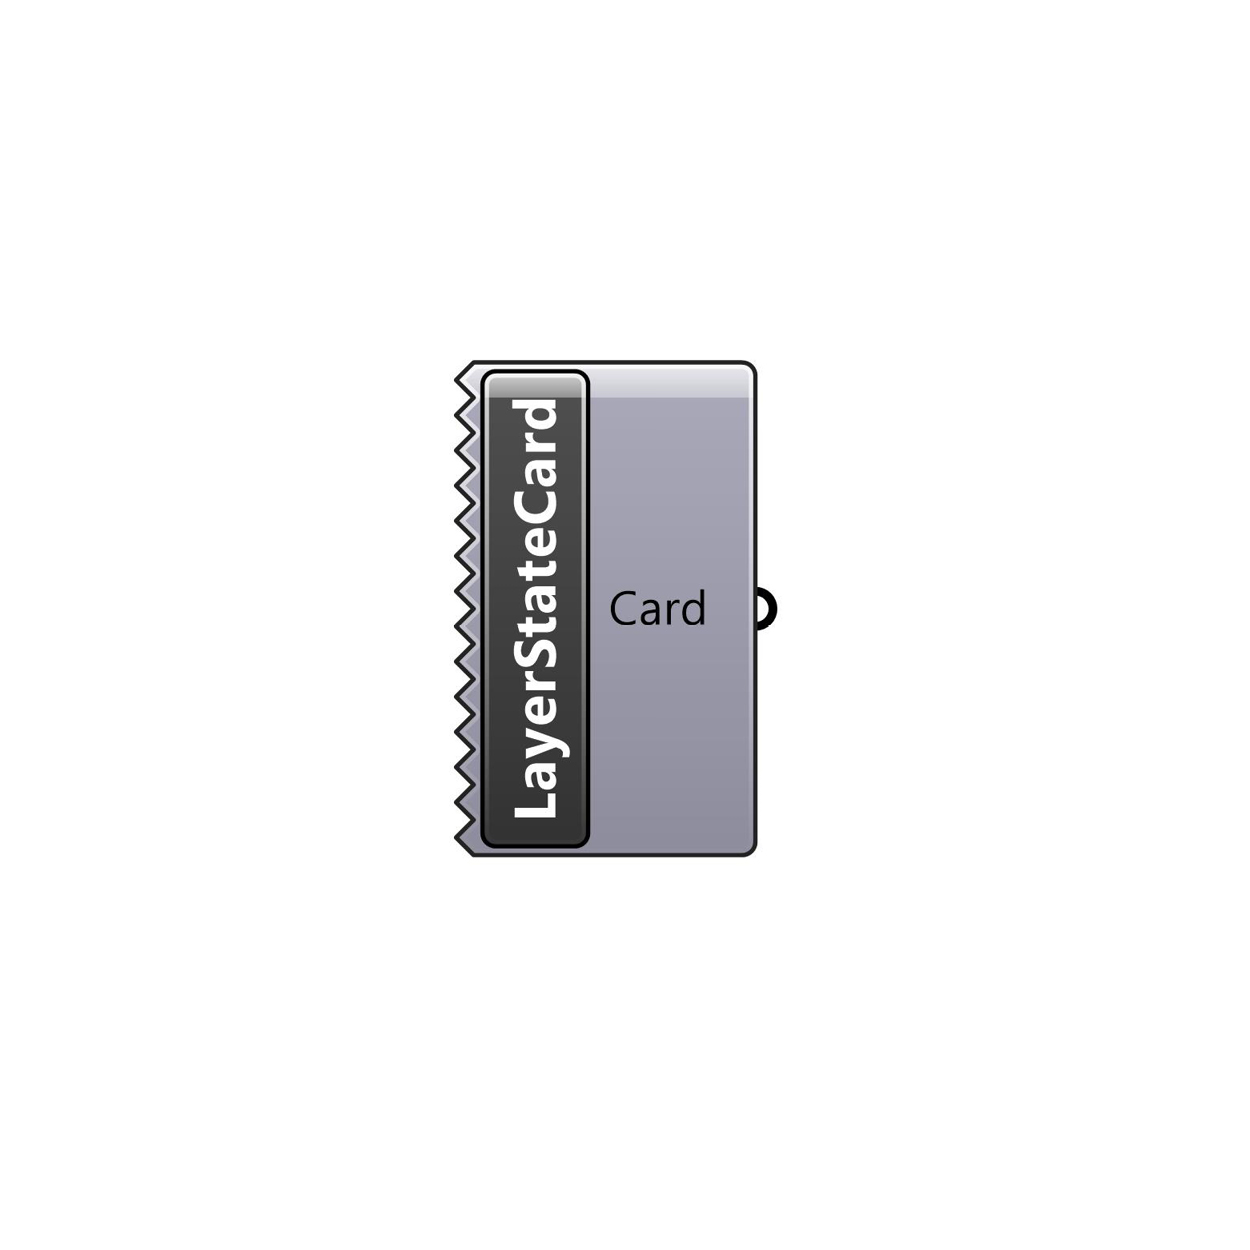 Layer State Card component